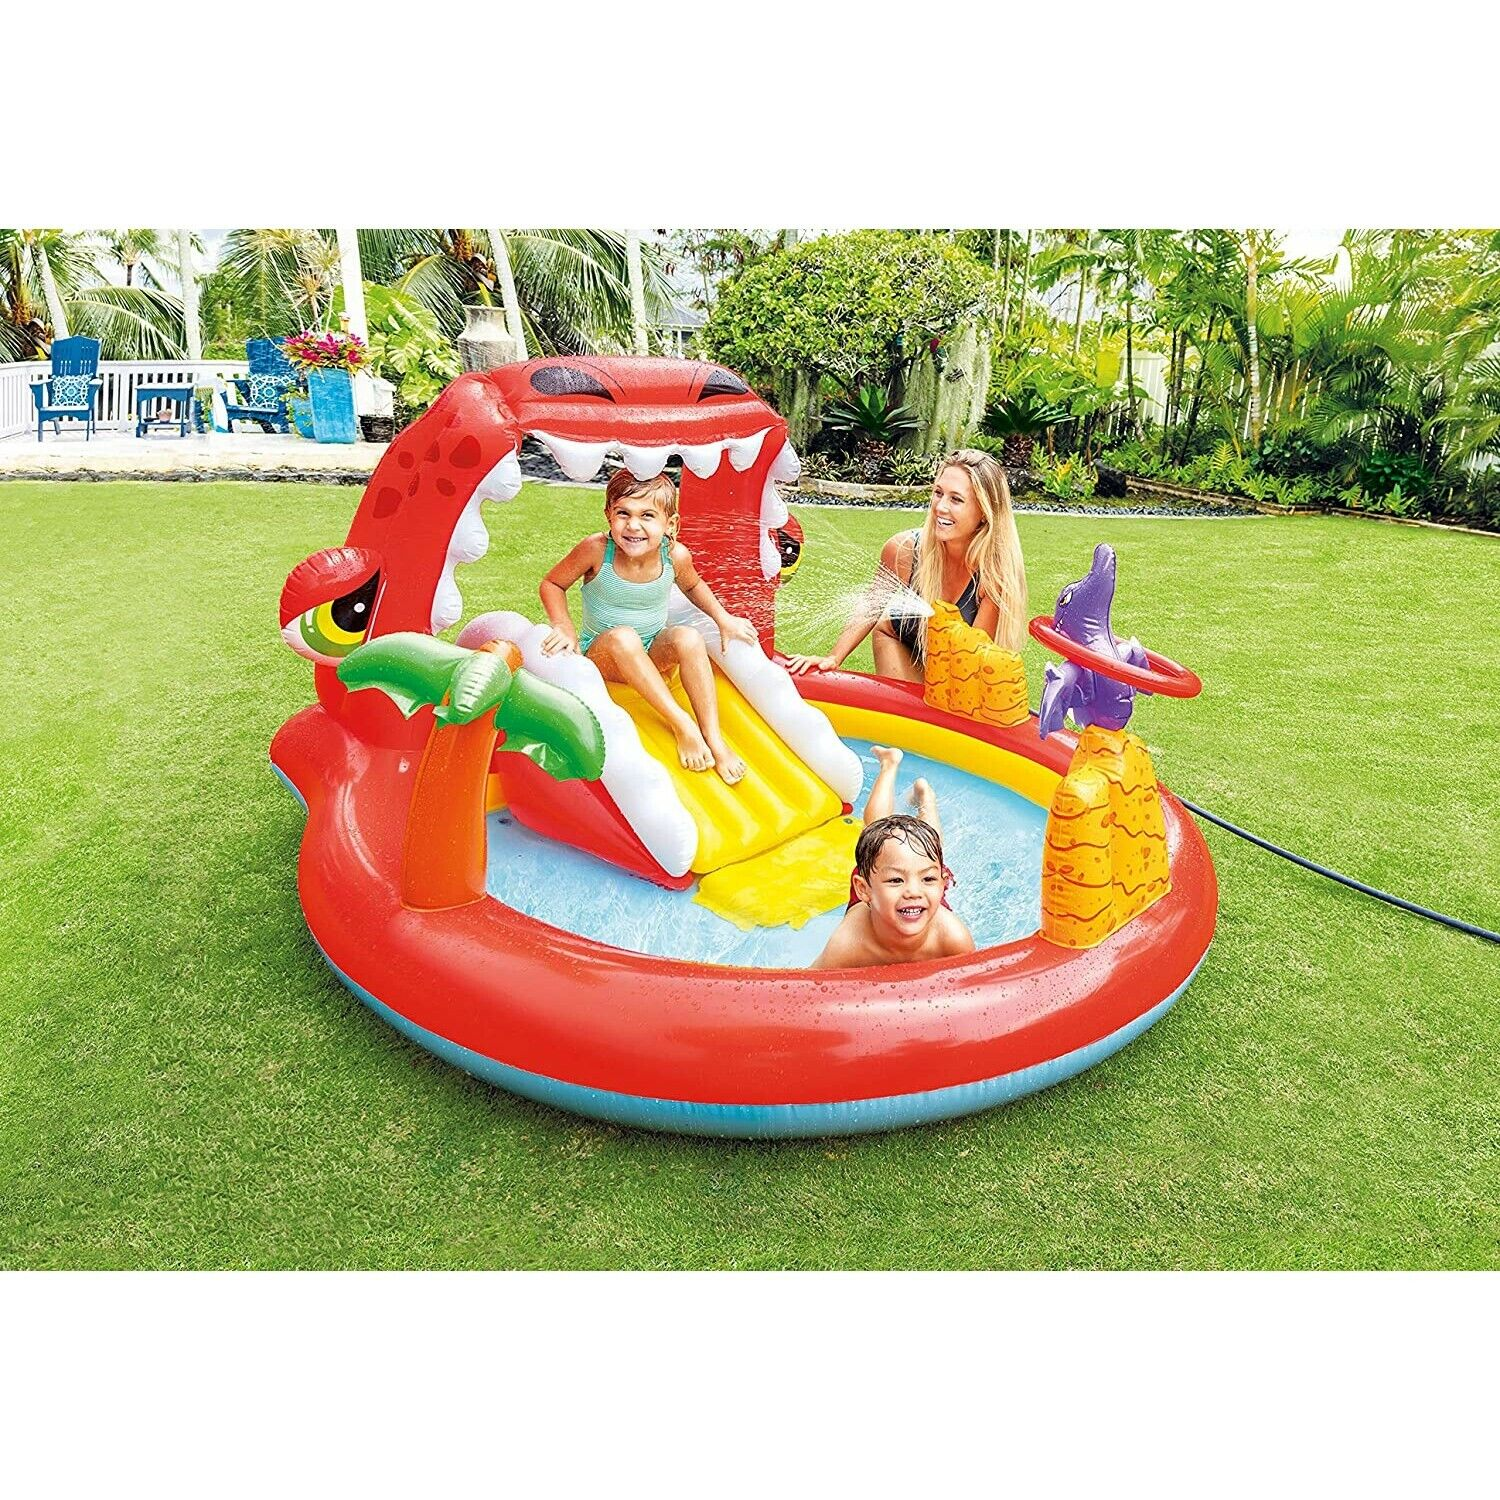 Inflatable Paddling Pool Slide Dino Fountain Play Kids Center Outdoor Garden